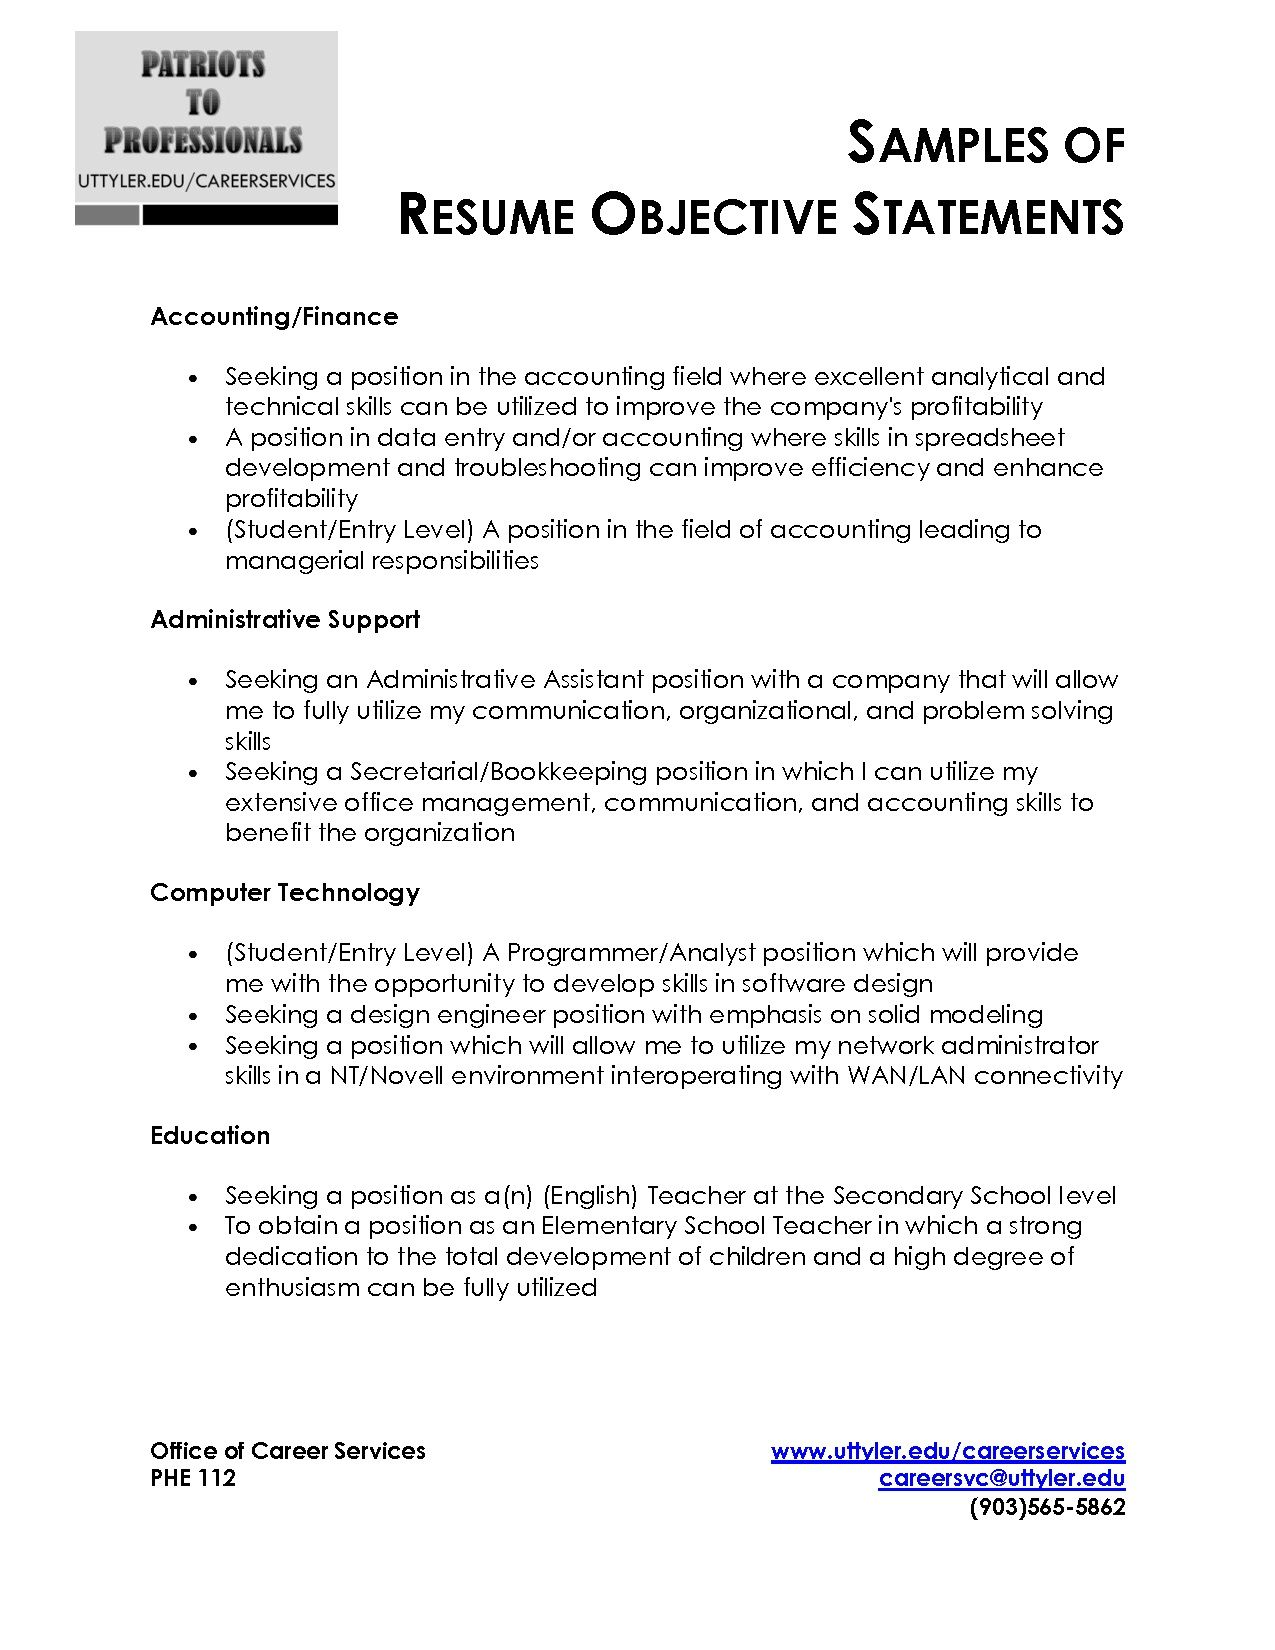 How To Write A Resume Objective For A Teaching Position Sample Resume Objective Statement Adsbygoogle Window